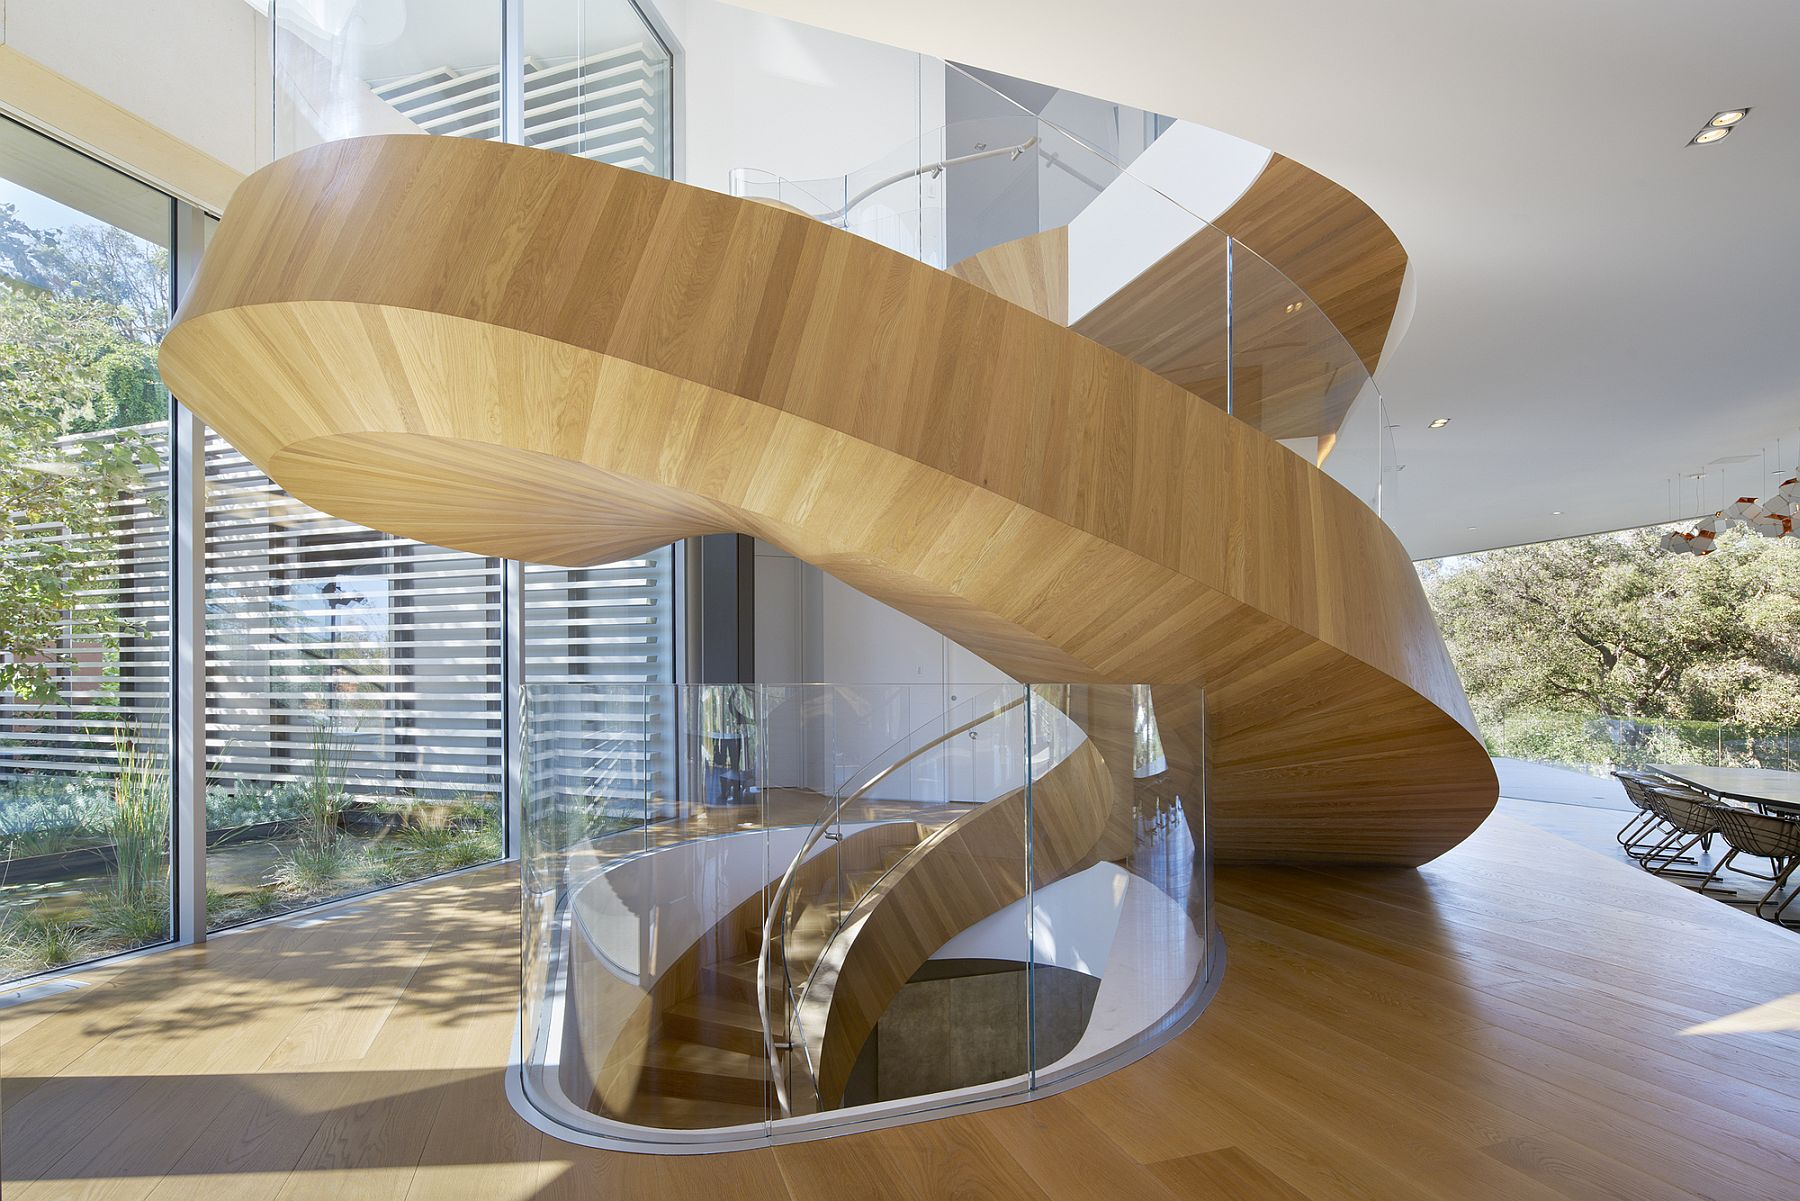 Exqlusive helical staircase design steals the show inside the sophisticated LA home